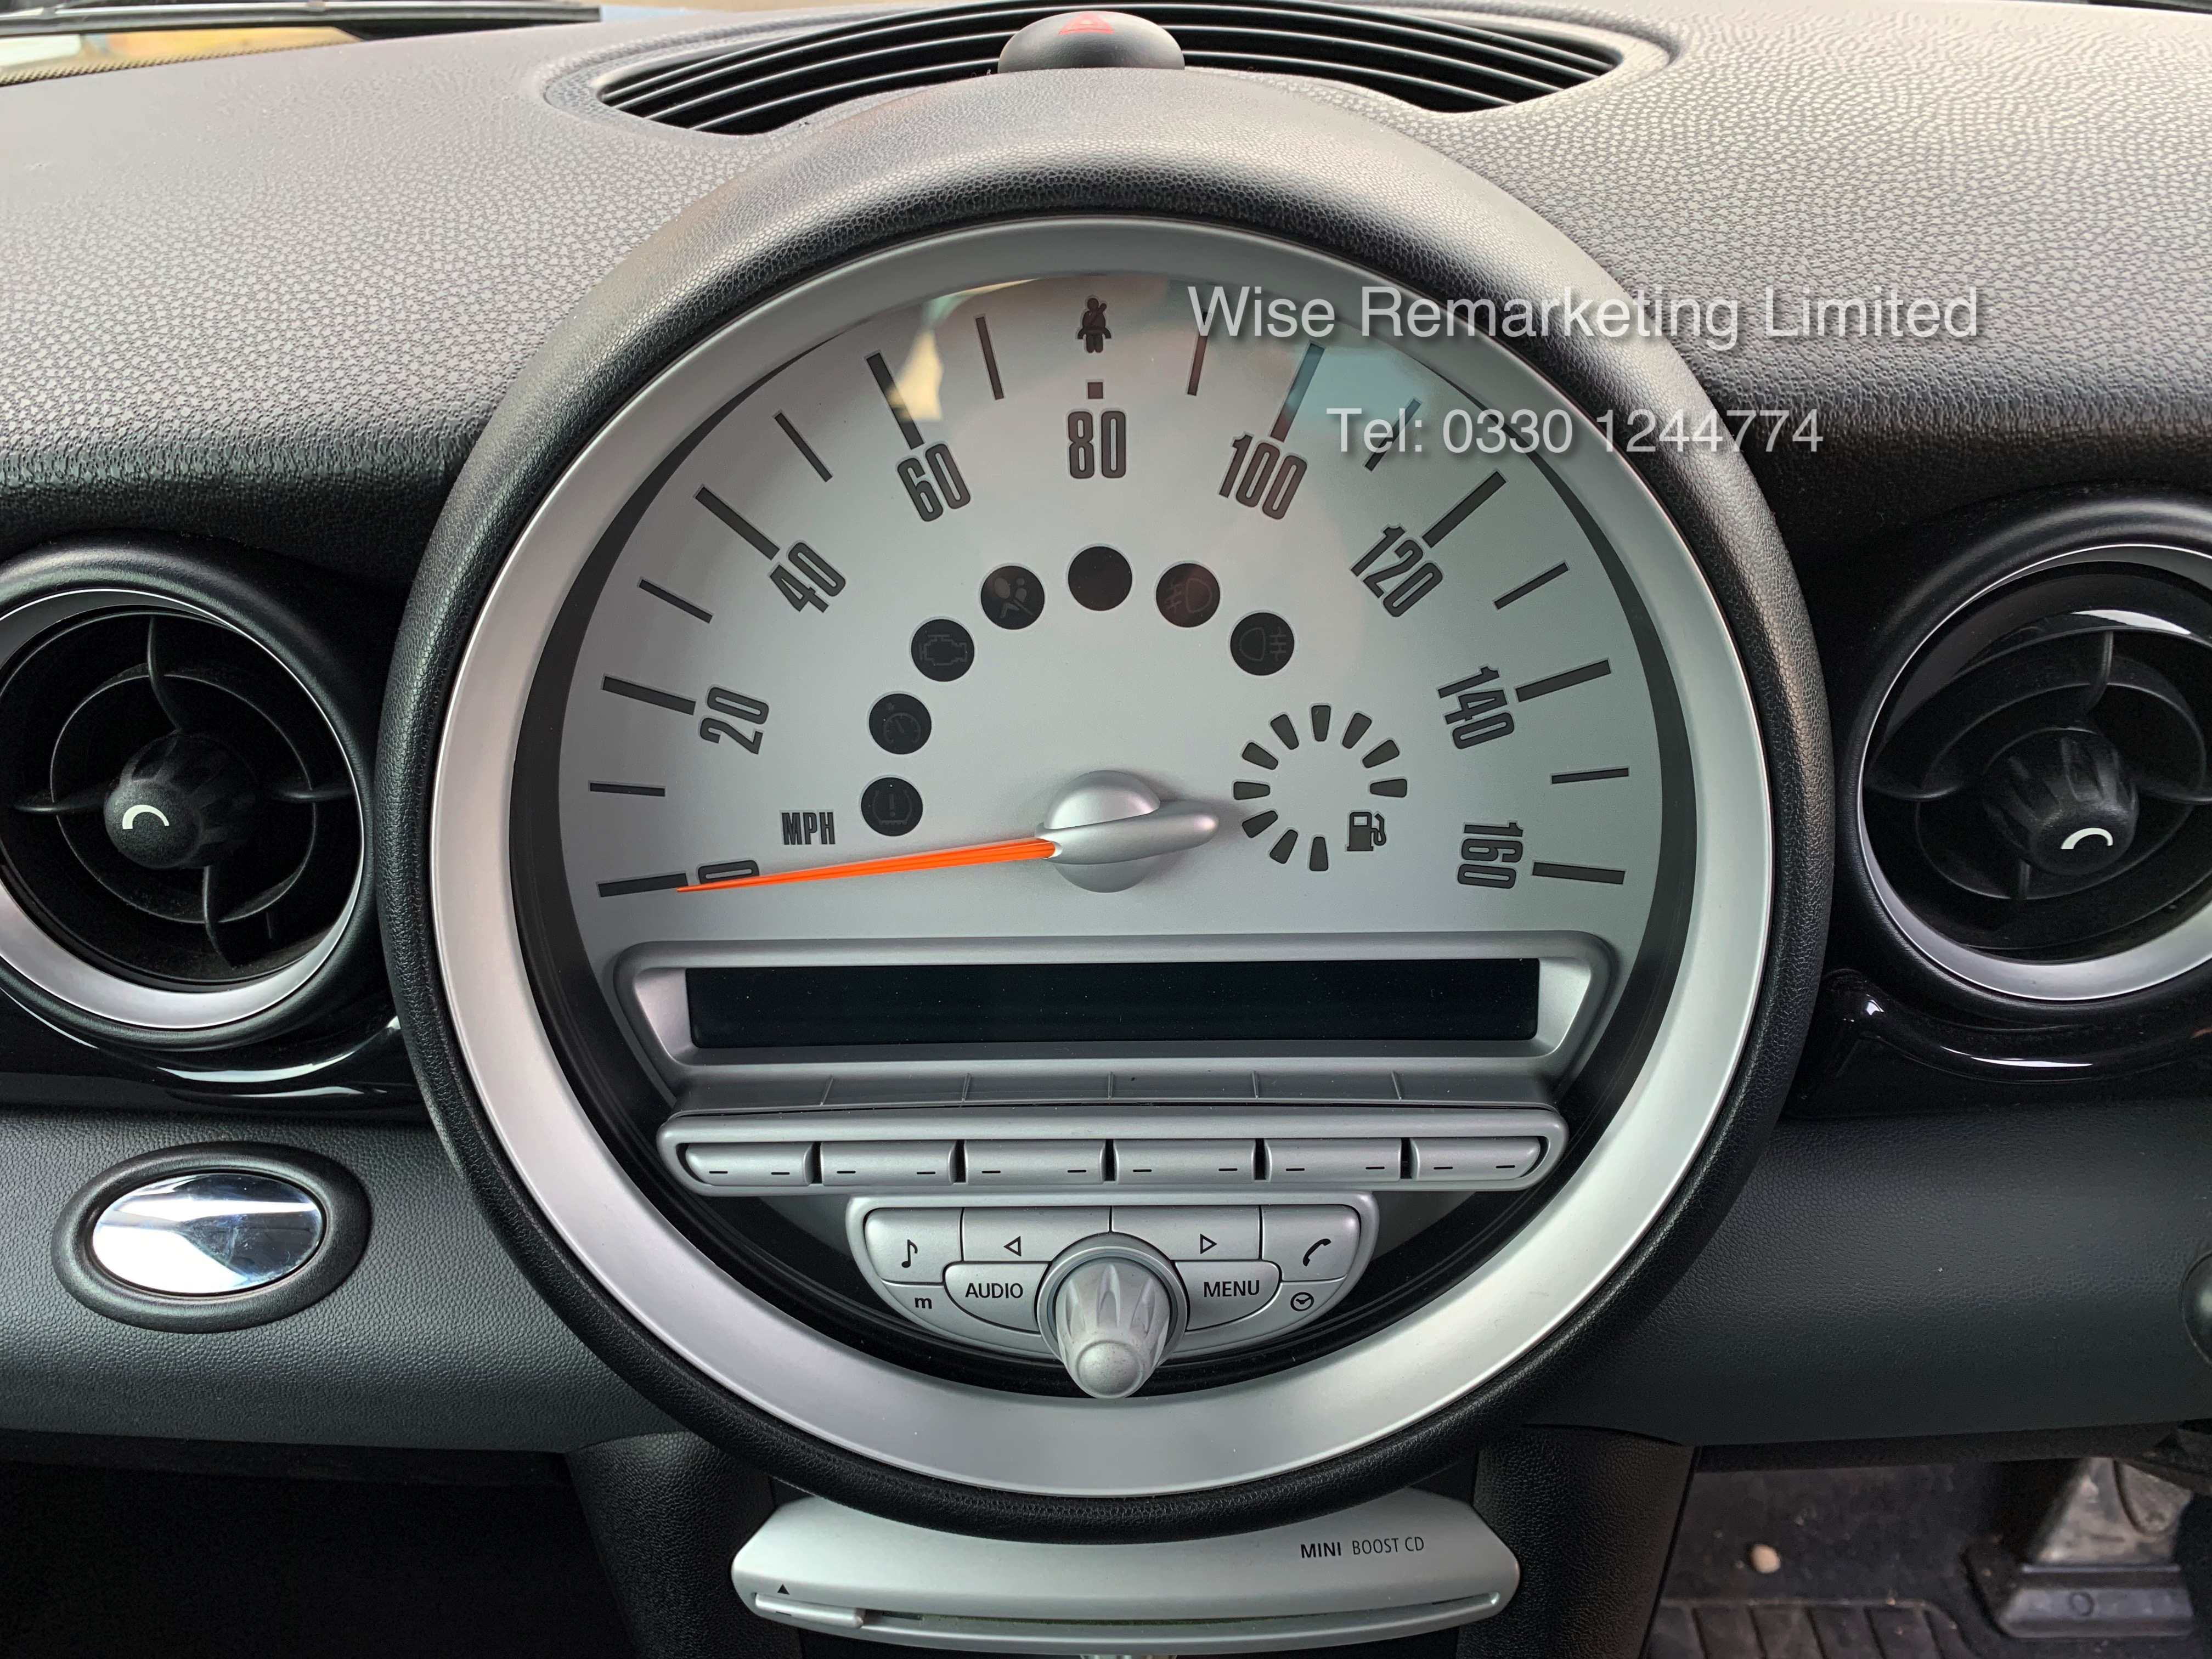 (RESERVE MET) Mini One Graphite 1.4 Petrol - 2010 Model - Service History - 6 Speed - Air Con - - Image 19 of 19